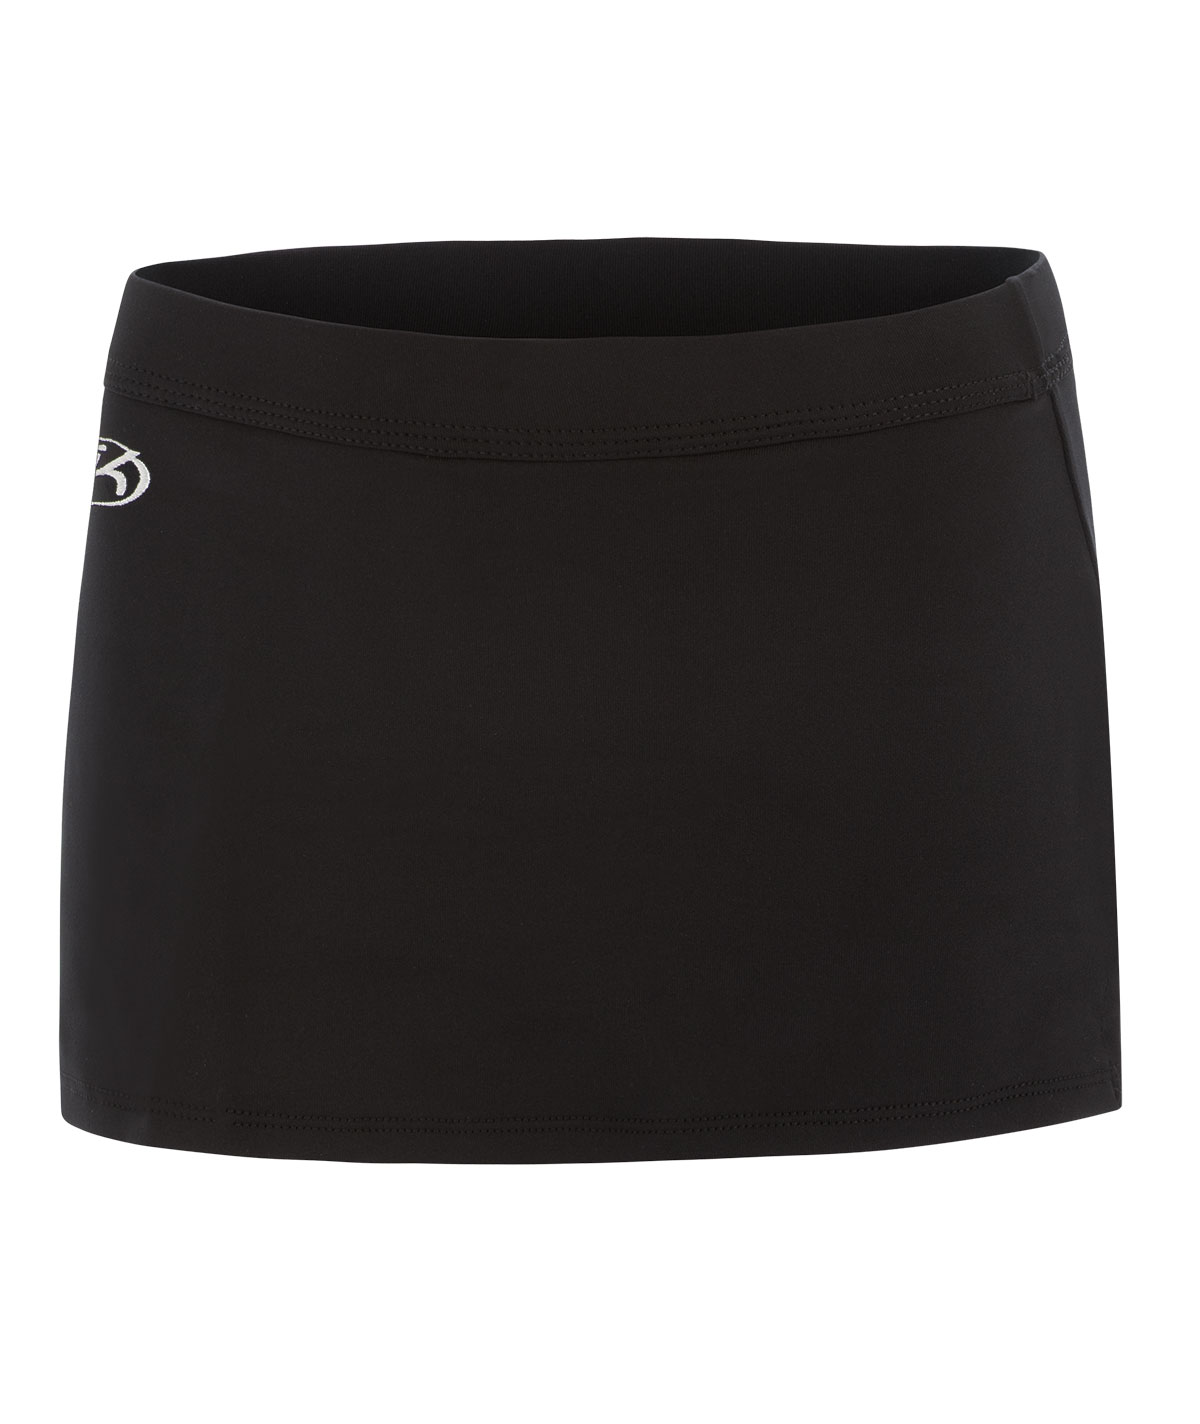 GK All Star Low Rise Basic DryTech Skirt